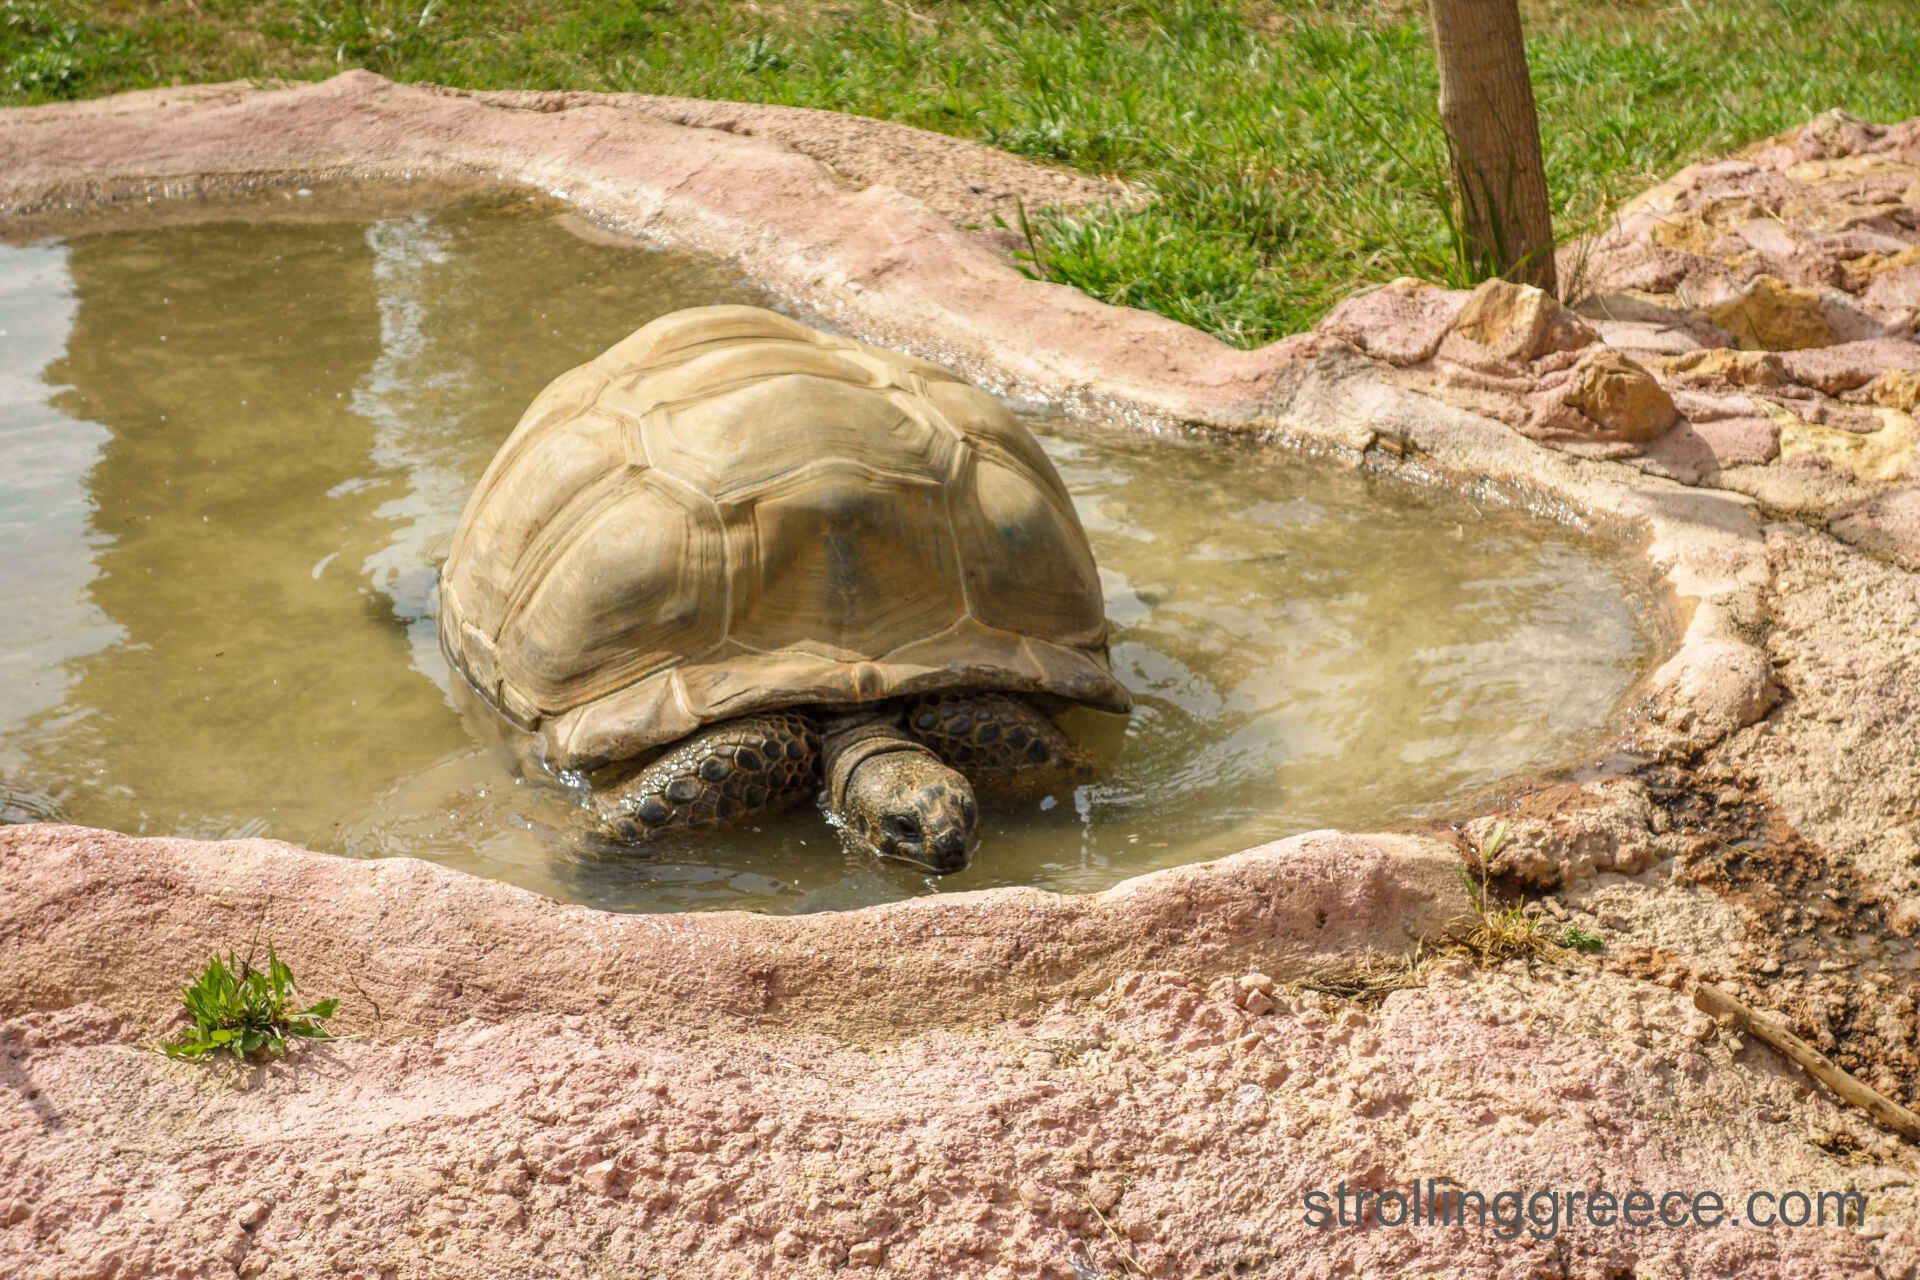 Giant turtle in Greece zoo